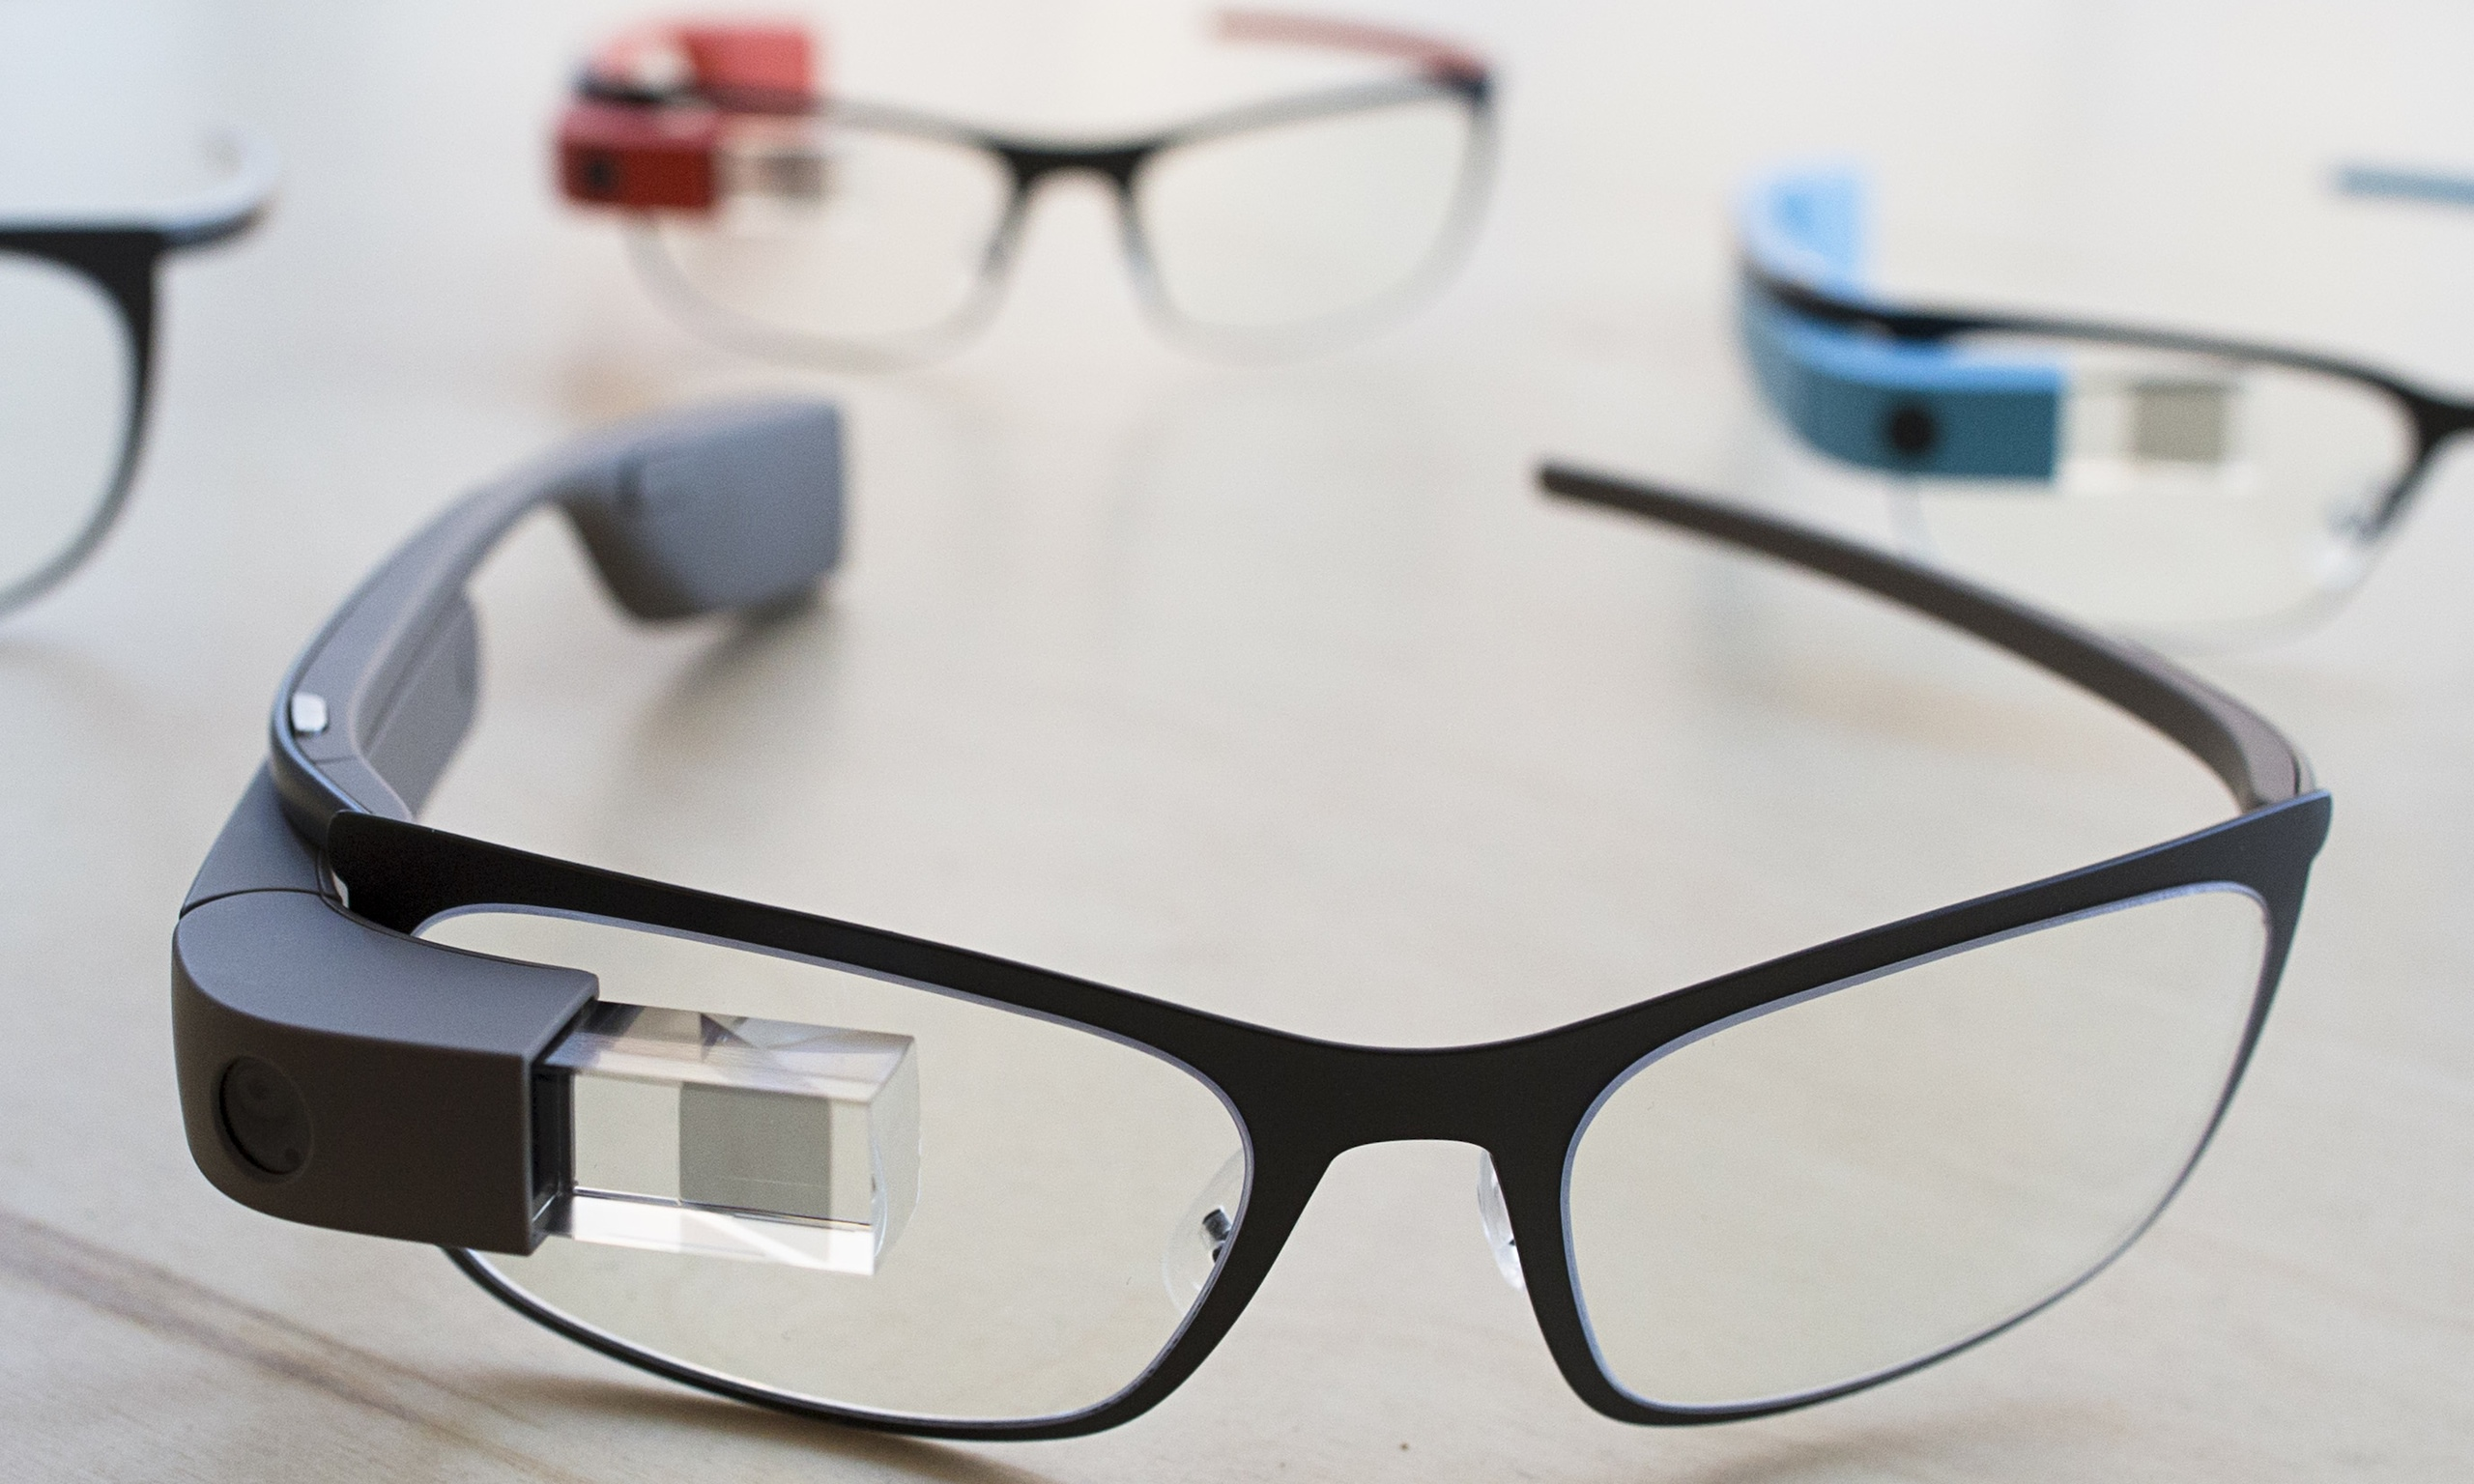 This is what happens when you go speed dating with Google Glass